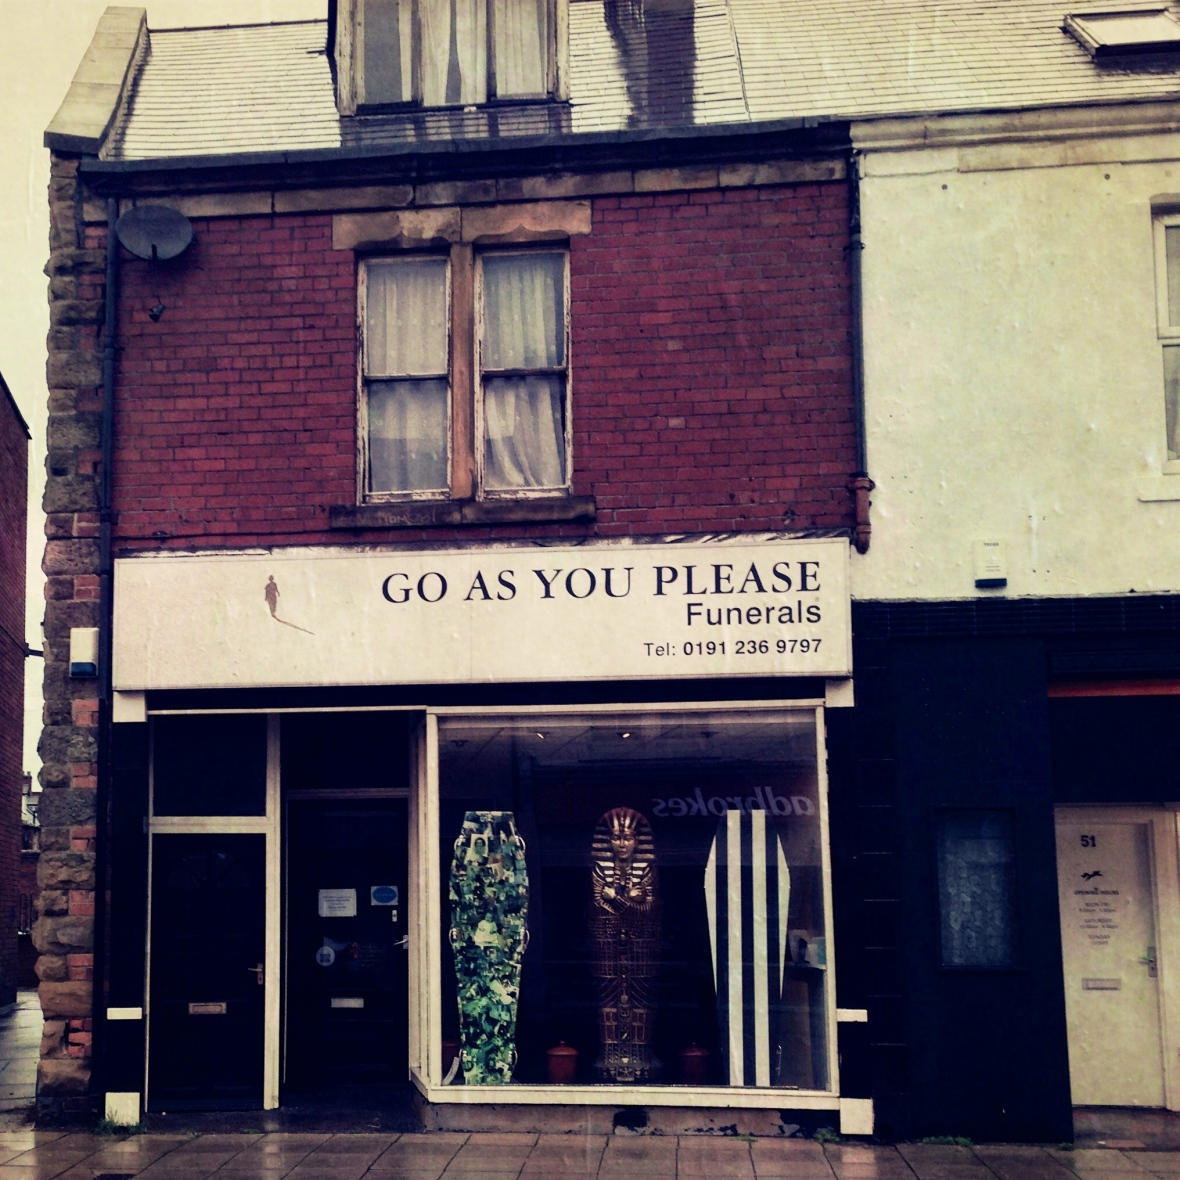 Go as you please